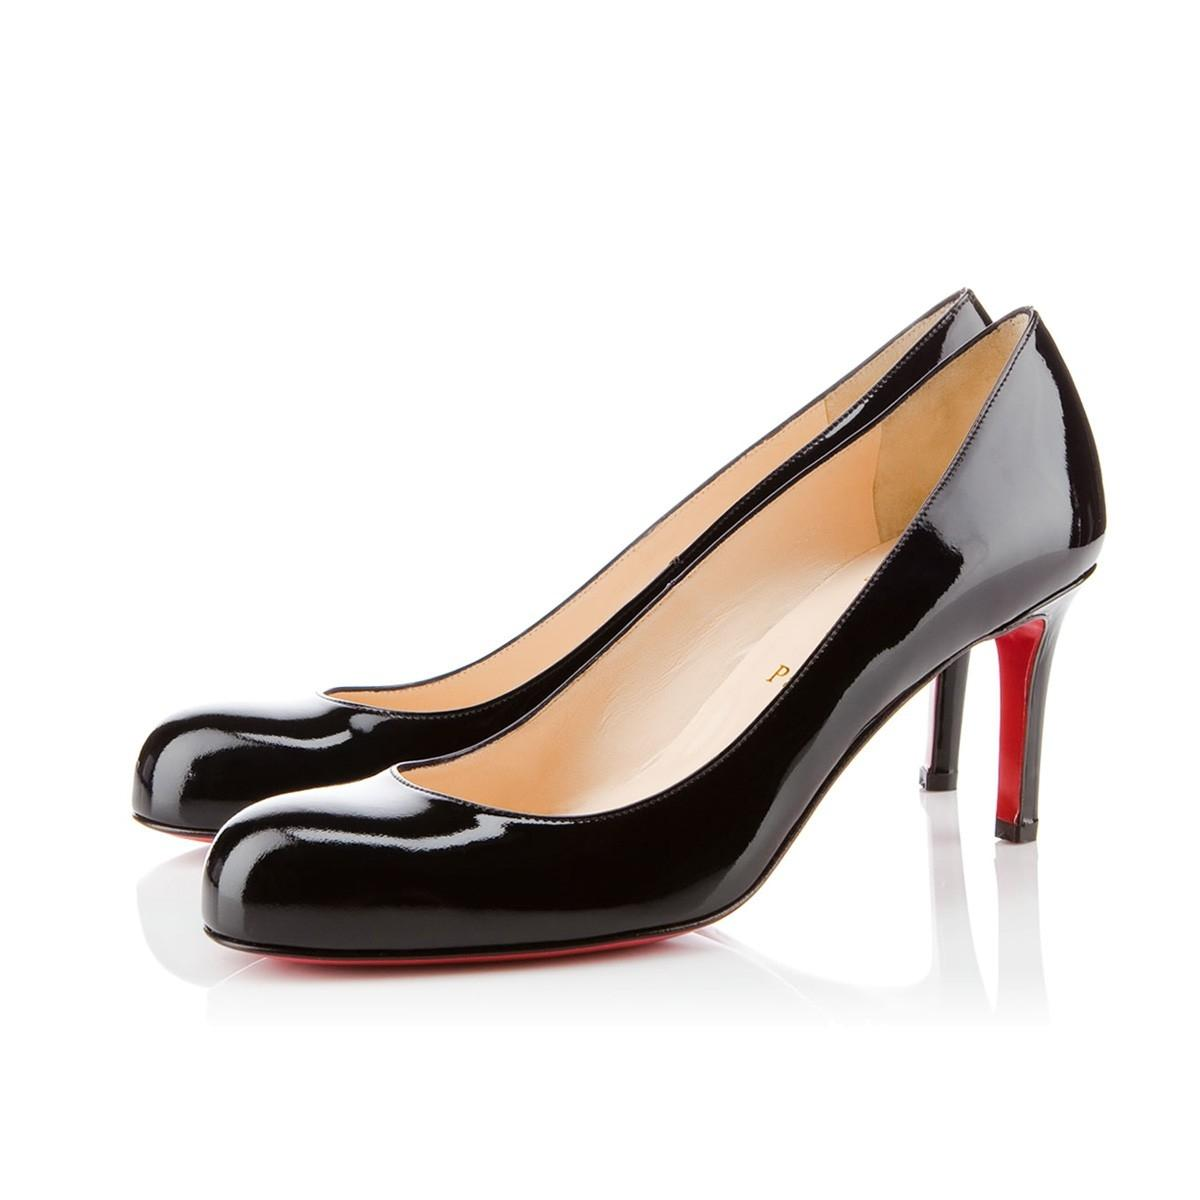 Christian Louboutin Black Simple 70 Patent Leather Classic Heel Pumps Size EU 35 (Approx. US 5) Regular (M, B)